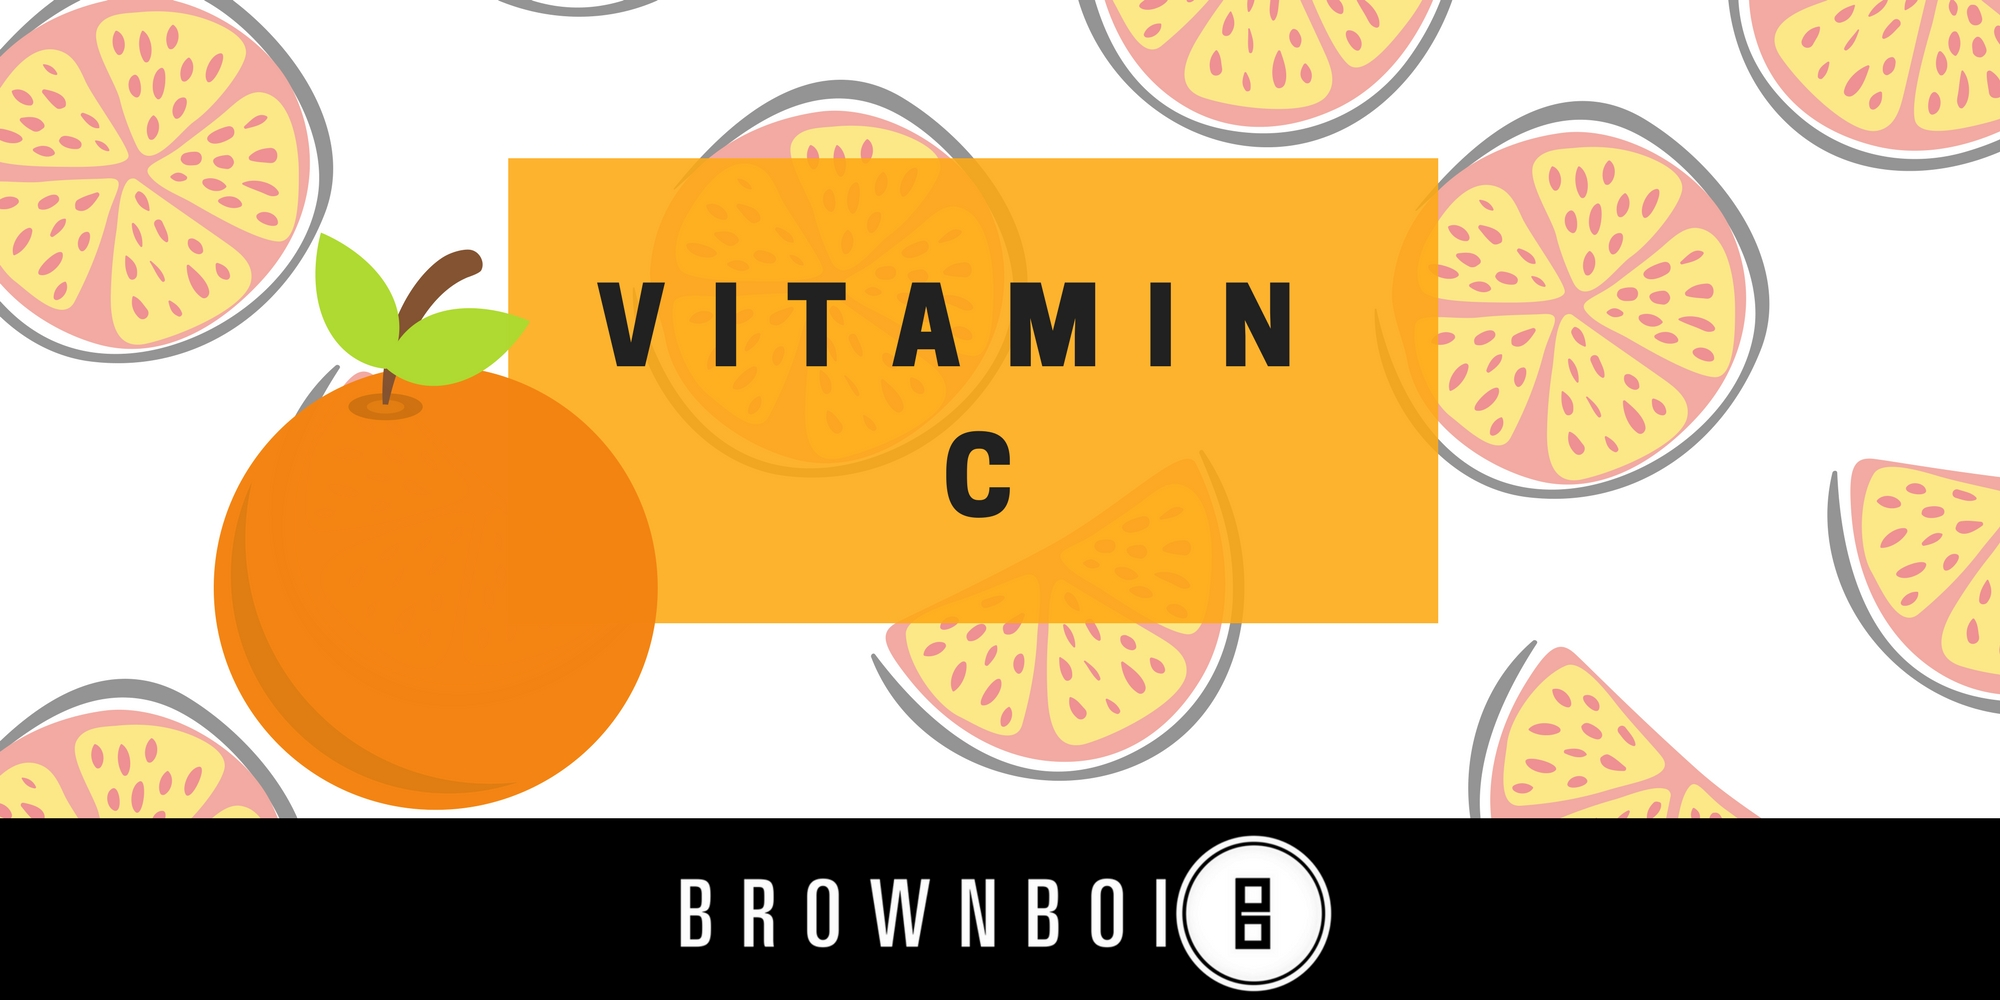 Vitamin C Serum Benefits For Skin & Face